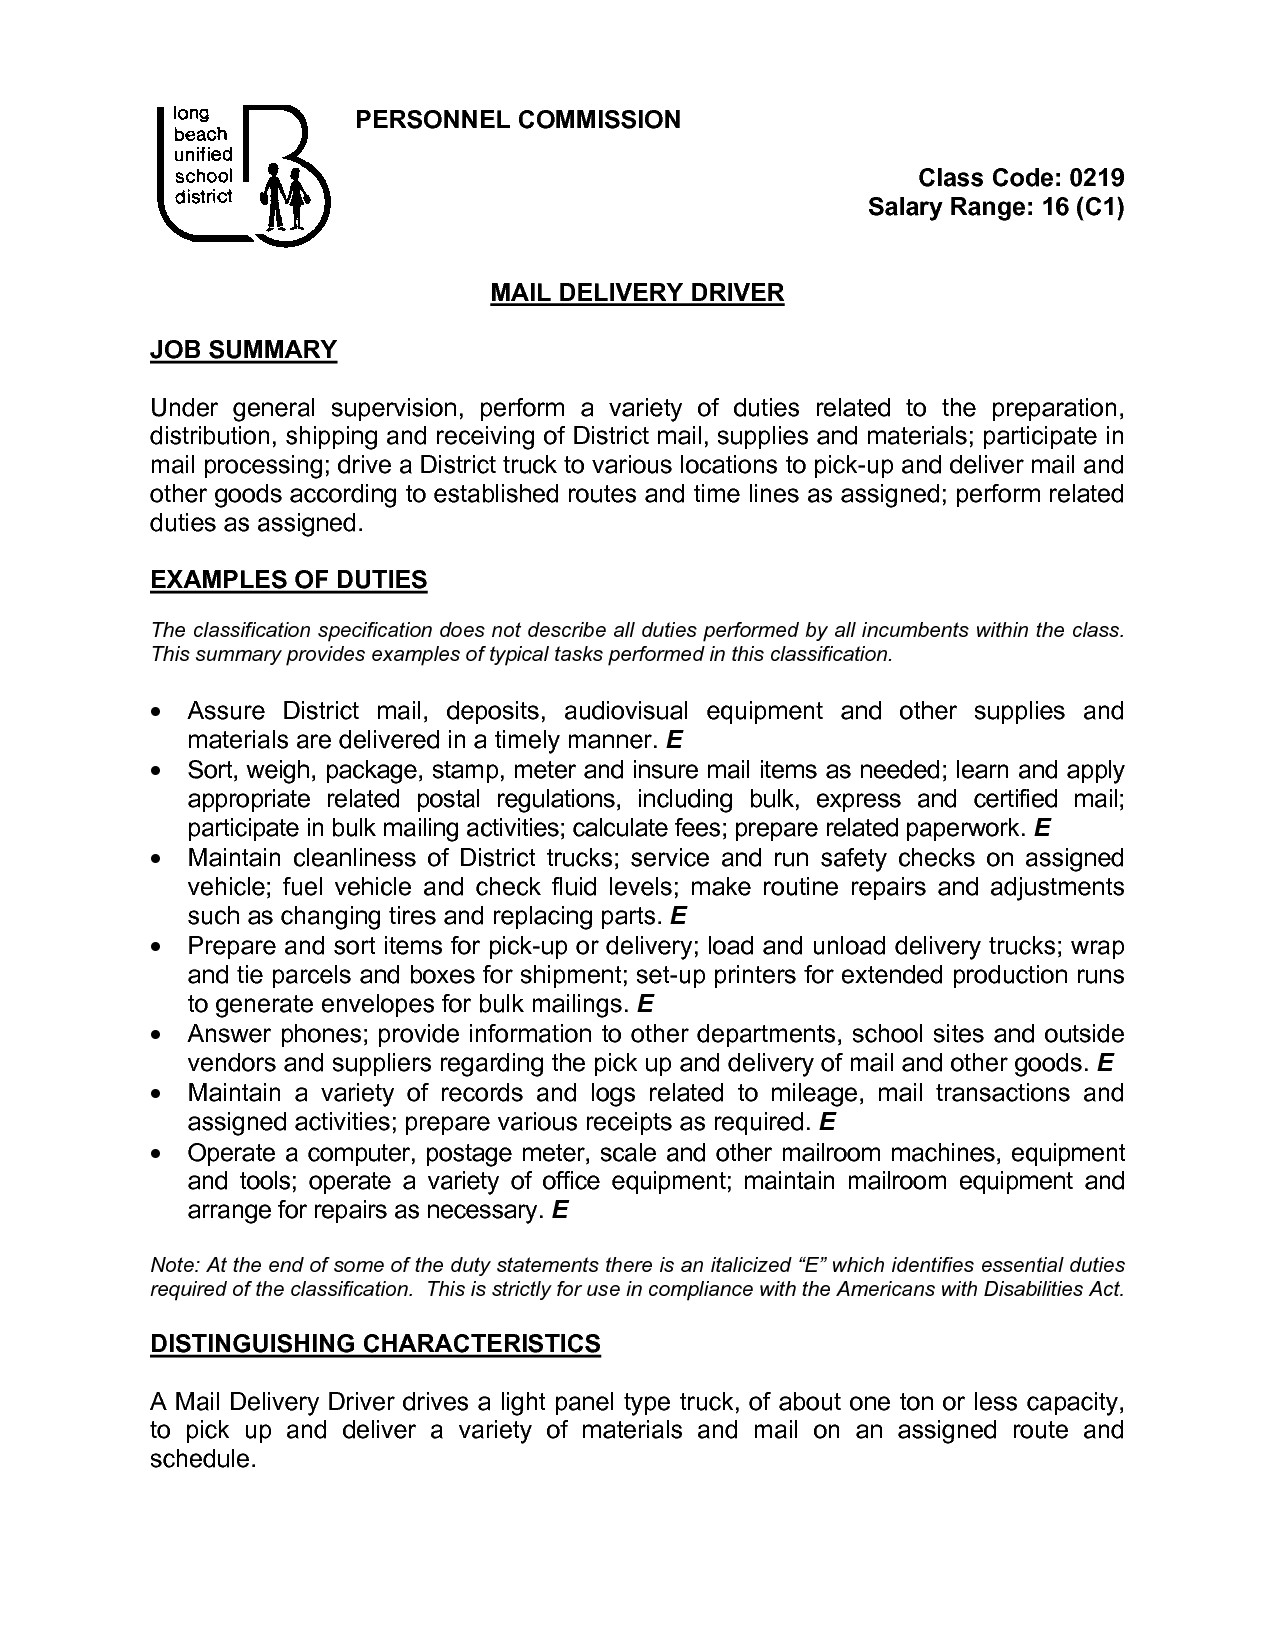 Forklift Operator Job Description Sample - Delivery Driver Job Description for Resume List Truck Driver